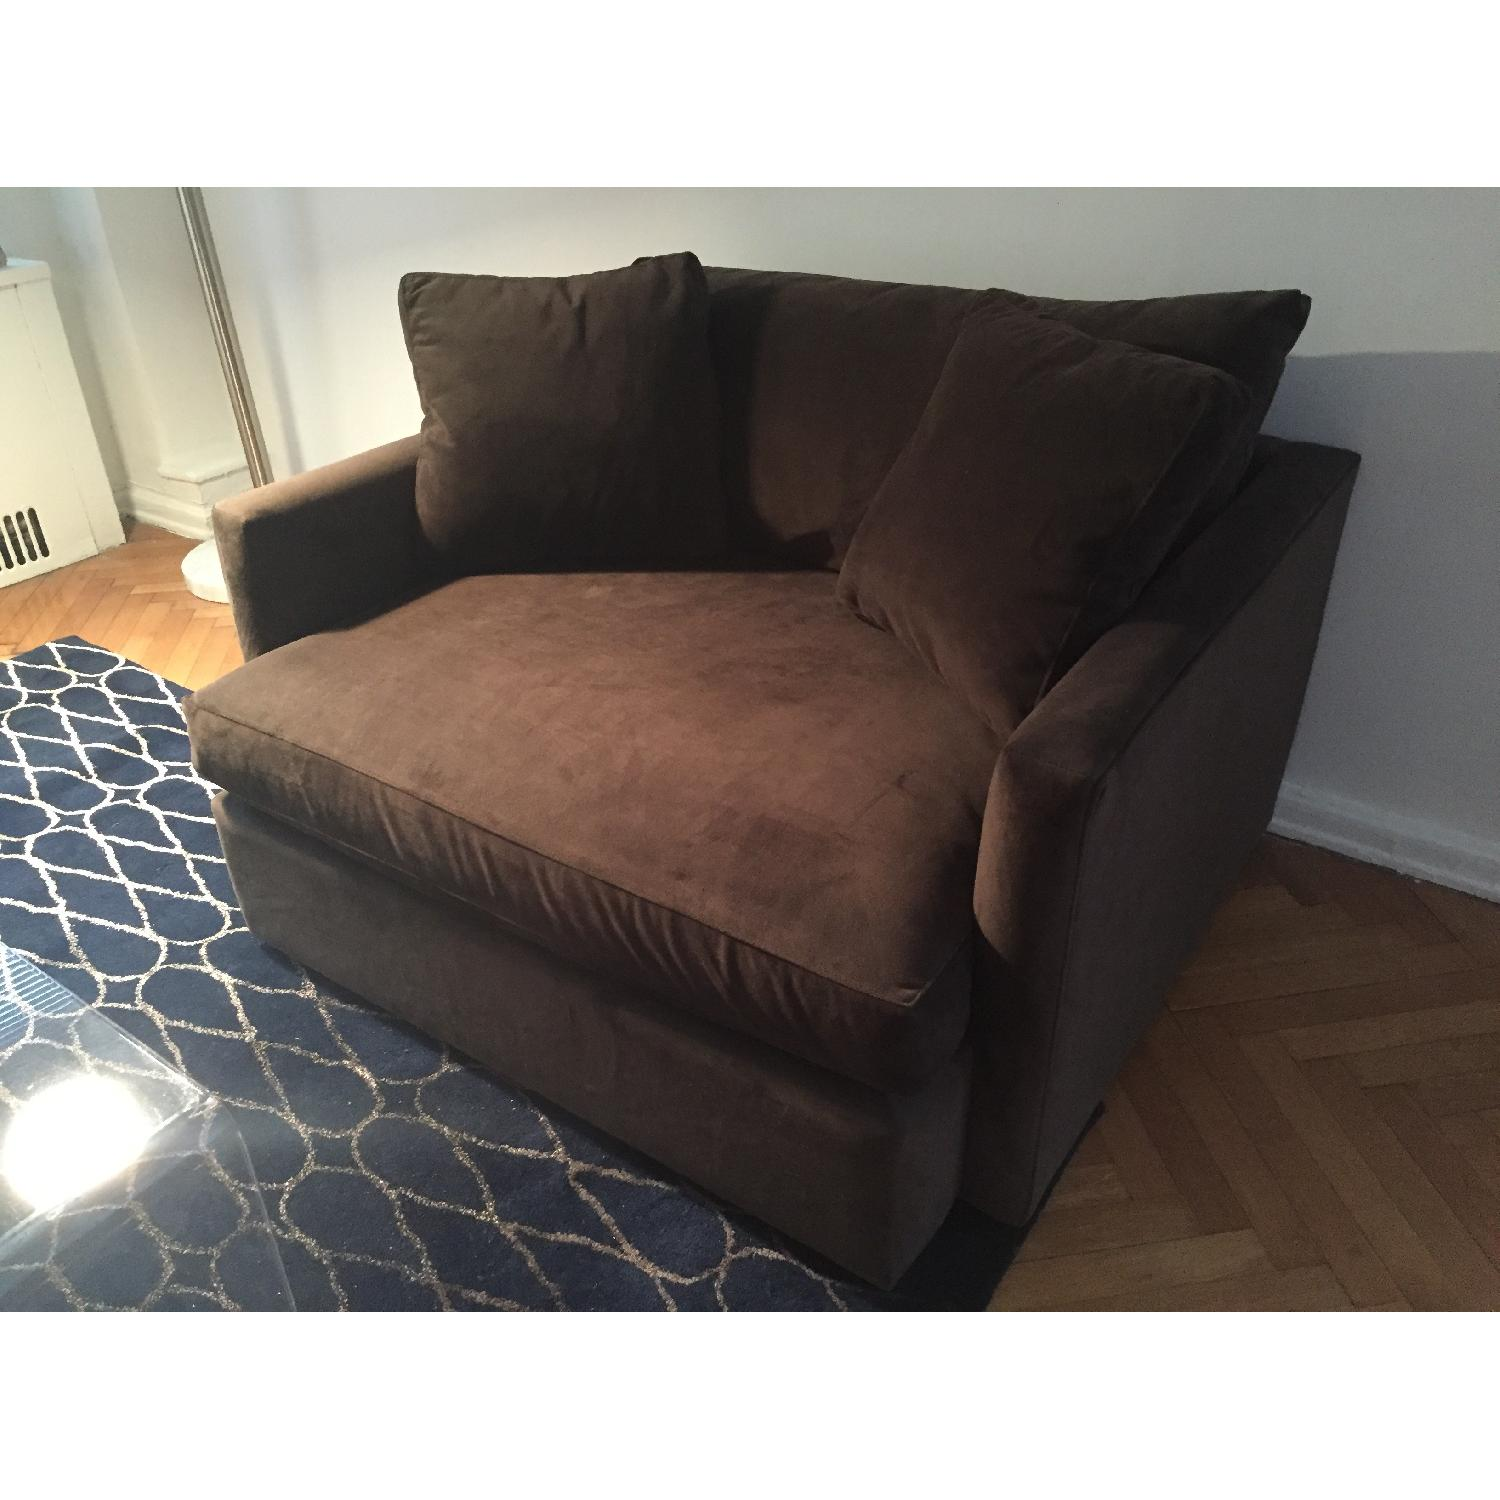 Crate & Barrel Lounge Chair and a Half - image-3